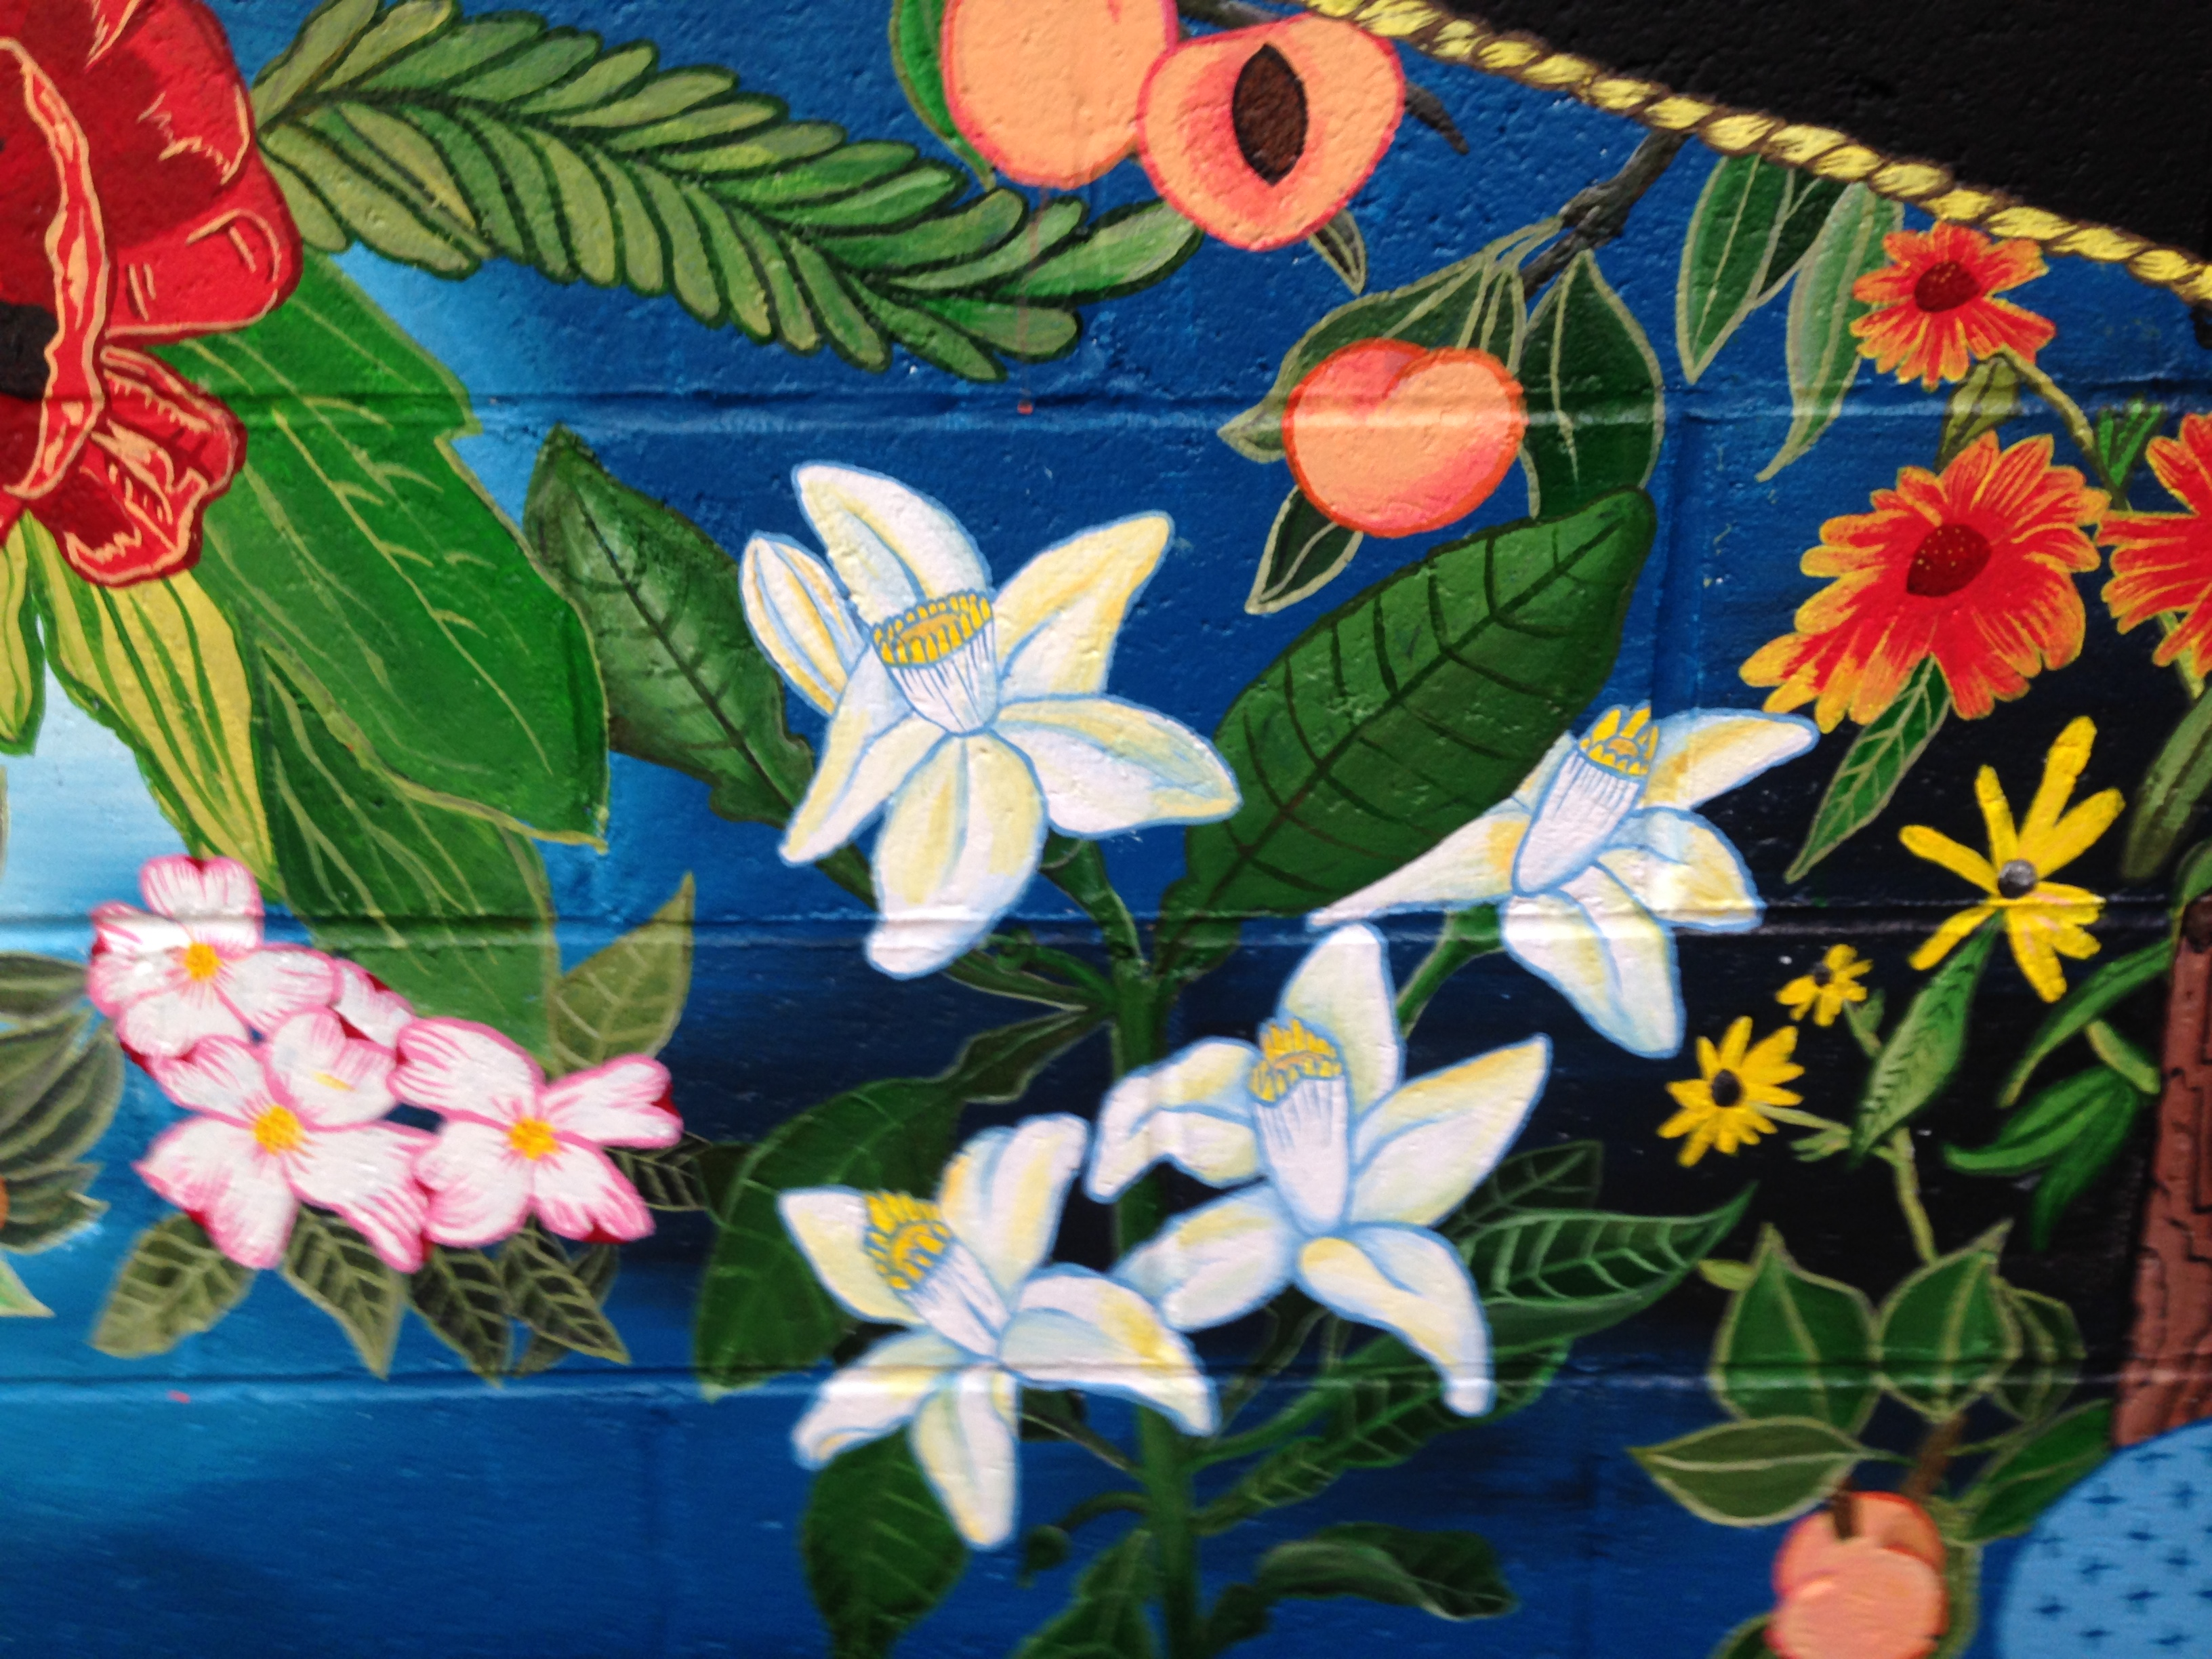 Mural at Ria's Bluebird by Lydia Walls: detail of flowers